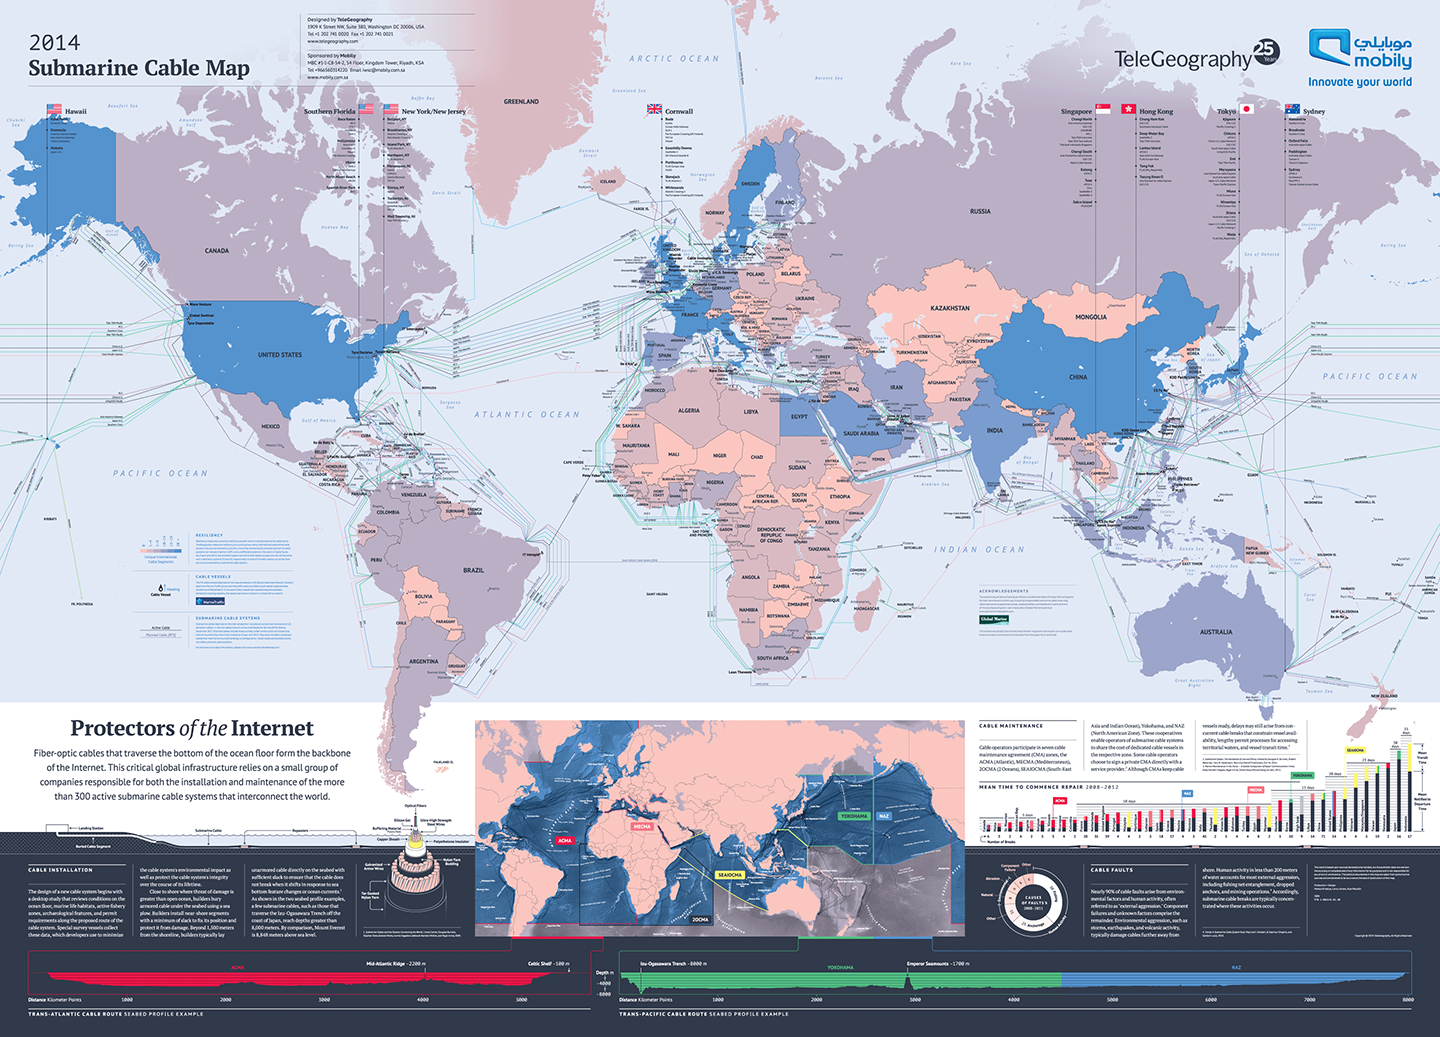 2014 Submarine Cable Map, TeleGeography